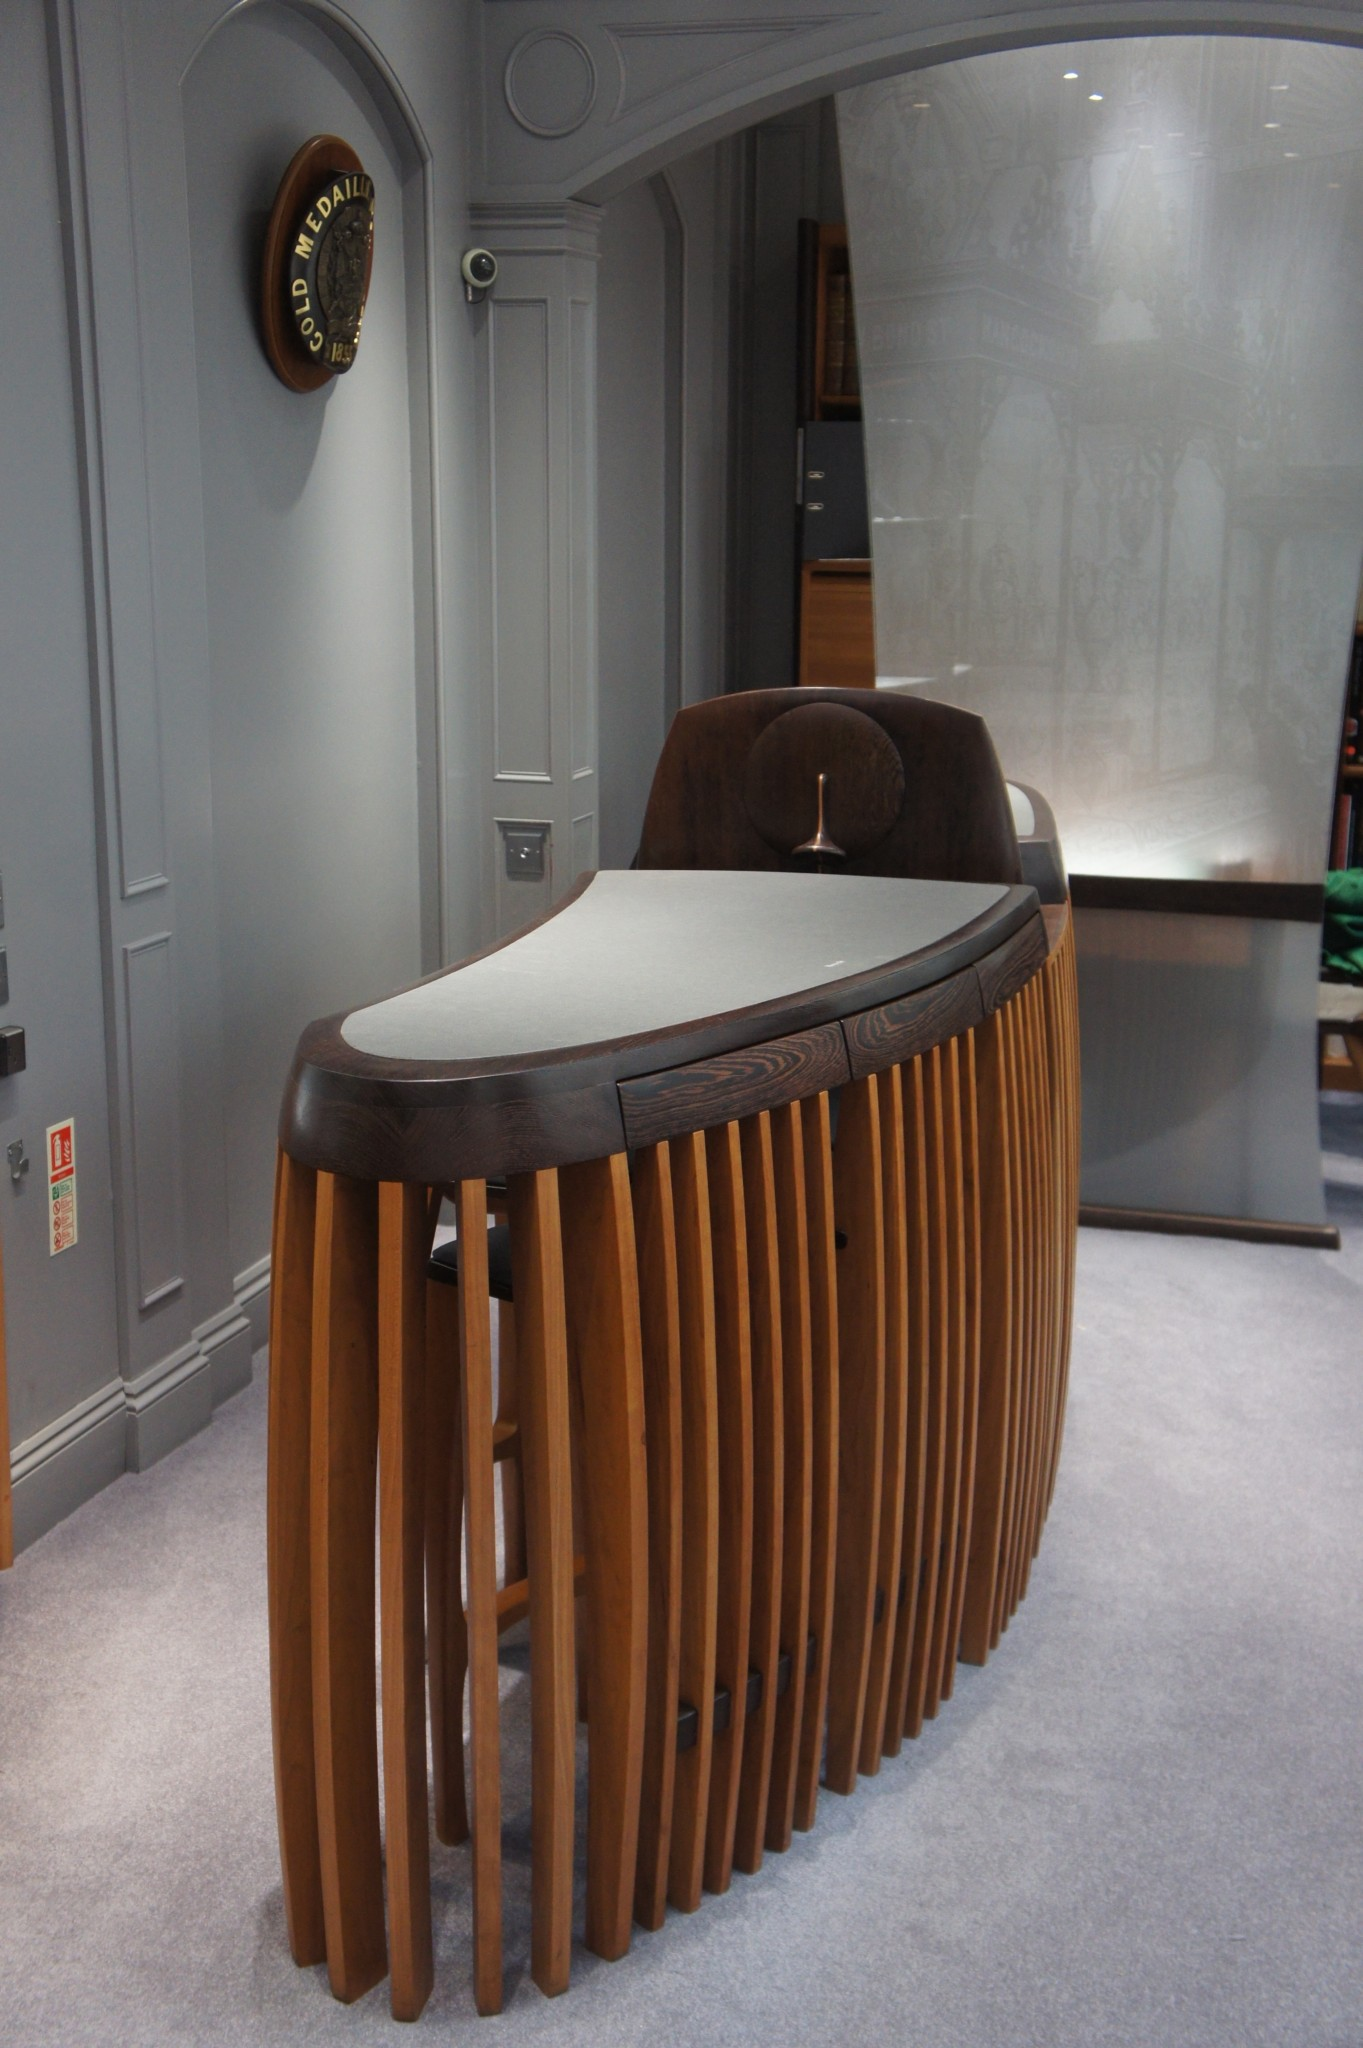 Wenge And Cherrywood Retail Sales Desk With Chairs In The Closed Position.  SASPOONER